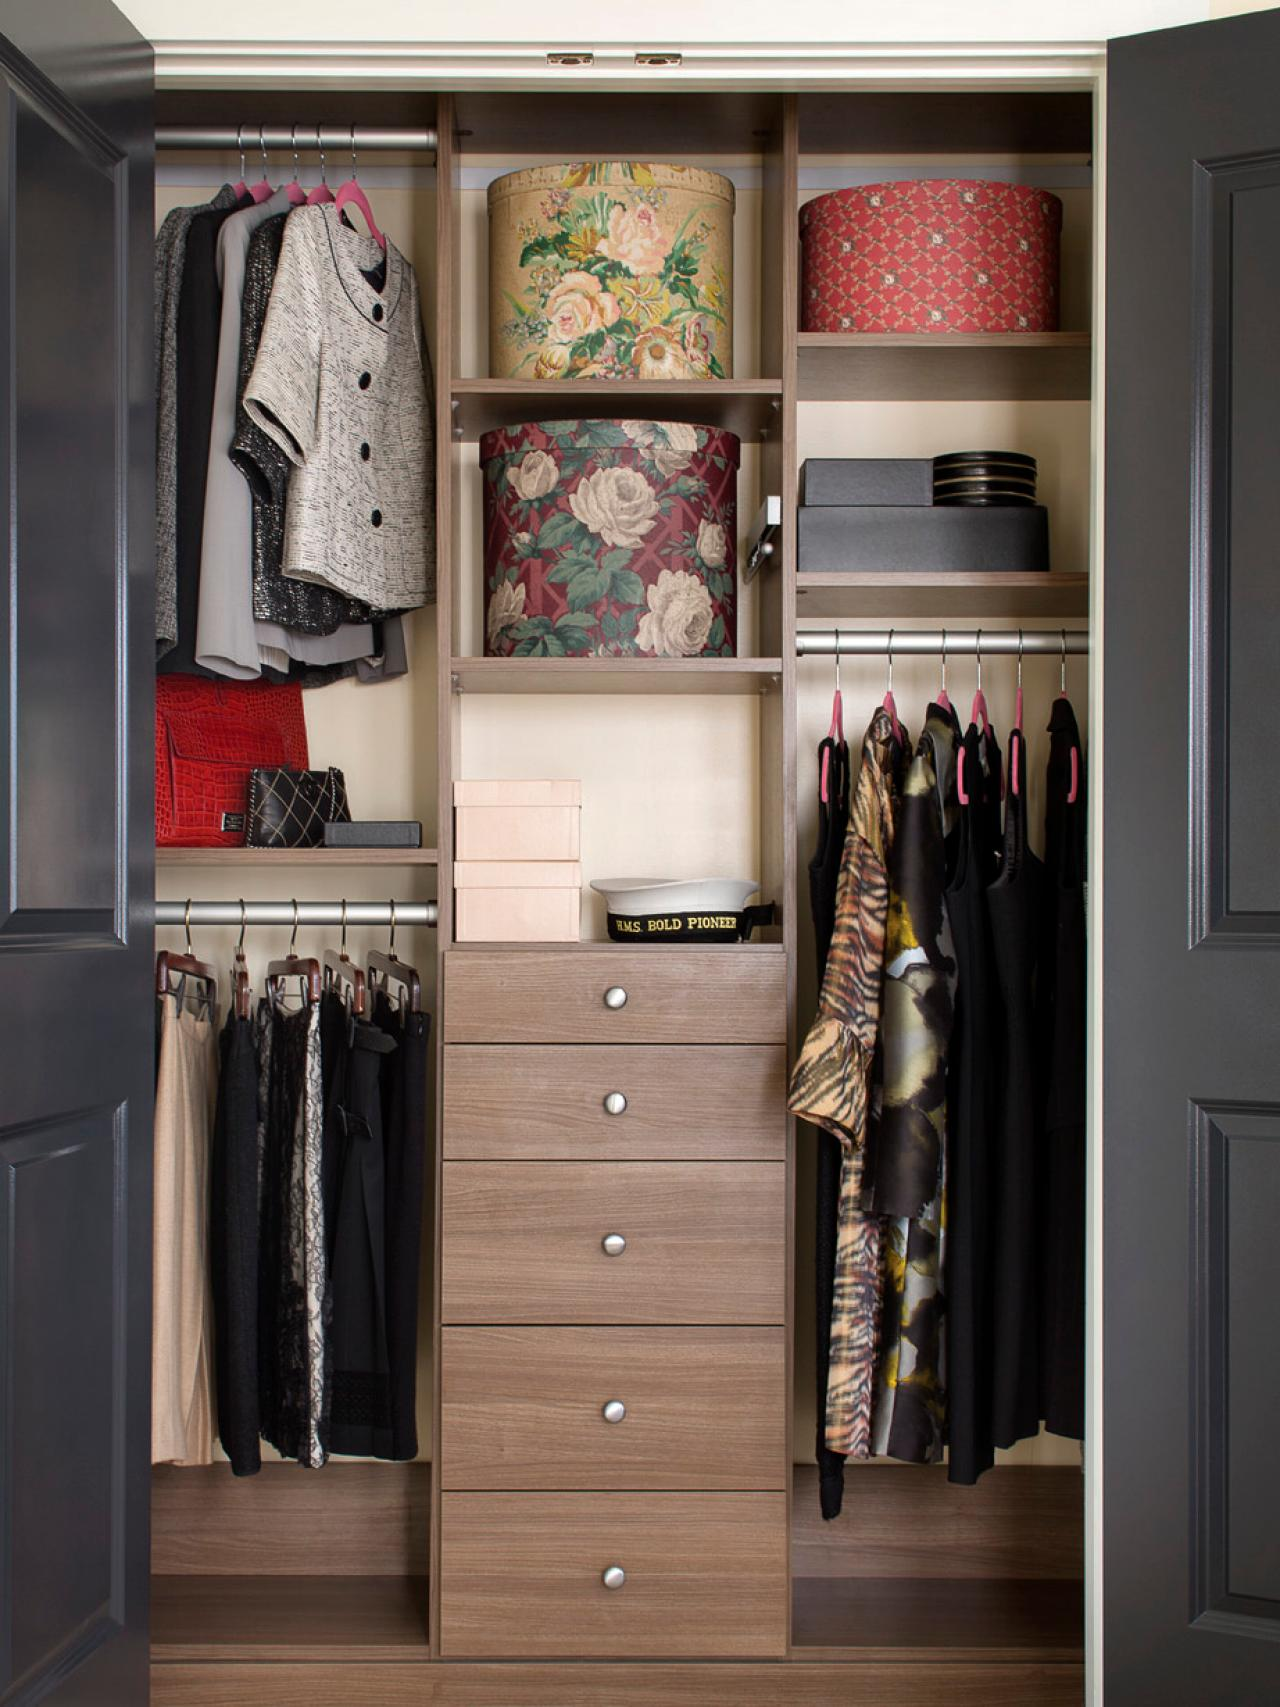 Closet organization ideas hgtv Pictures of closet organizers